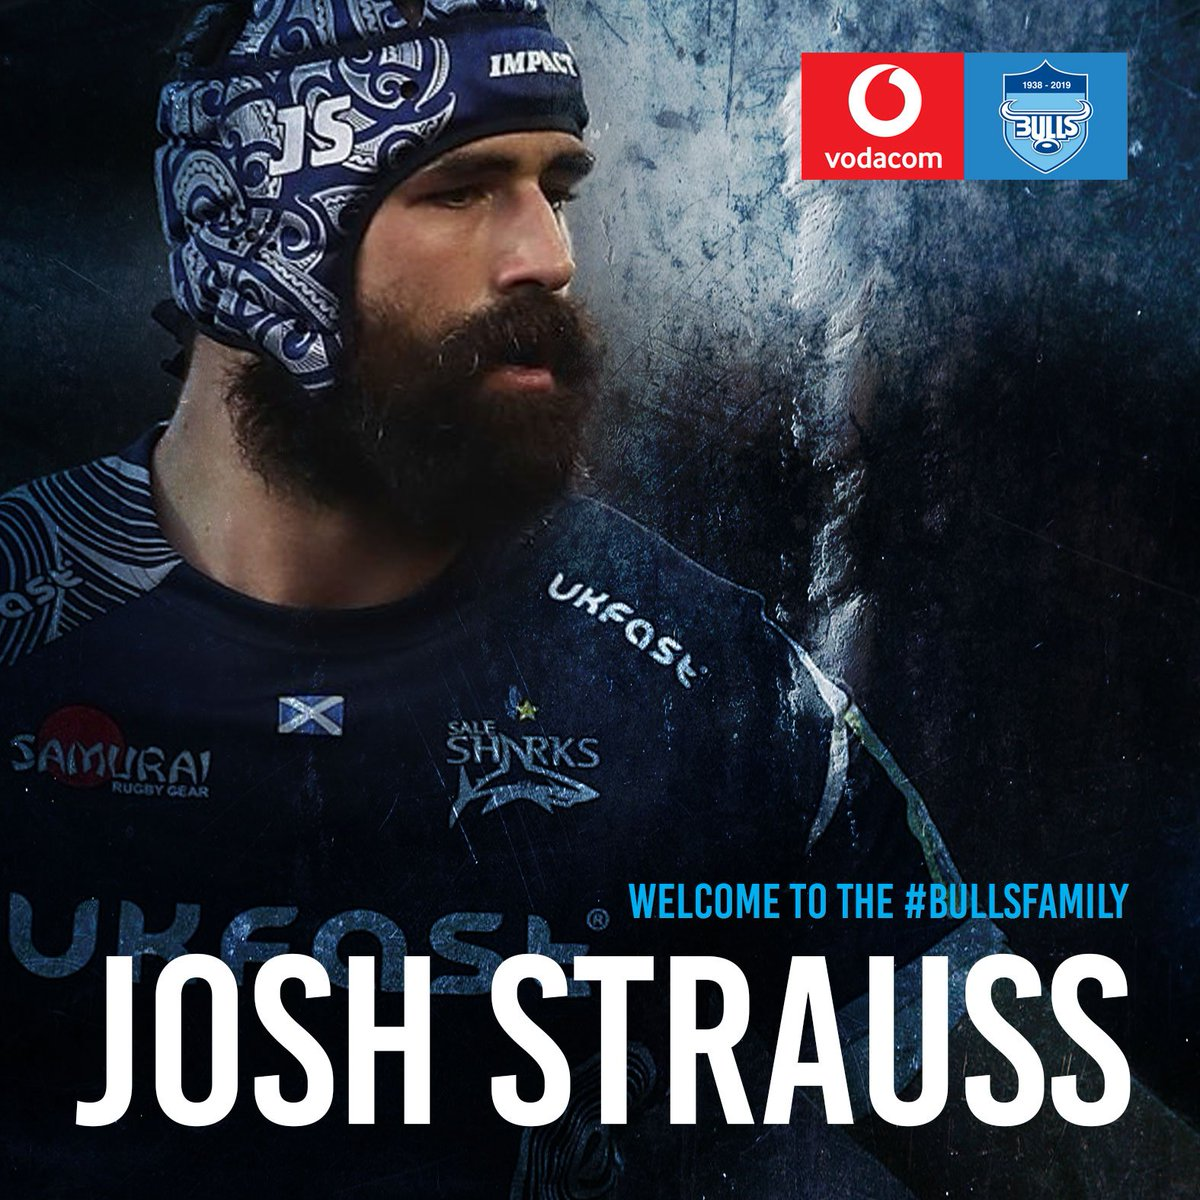 Looking forward to seeing Josh Strauss run out at Loftus.   Welcome to the #BullsFamily big guy